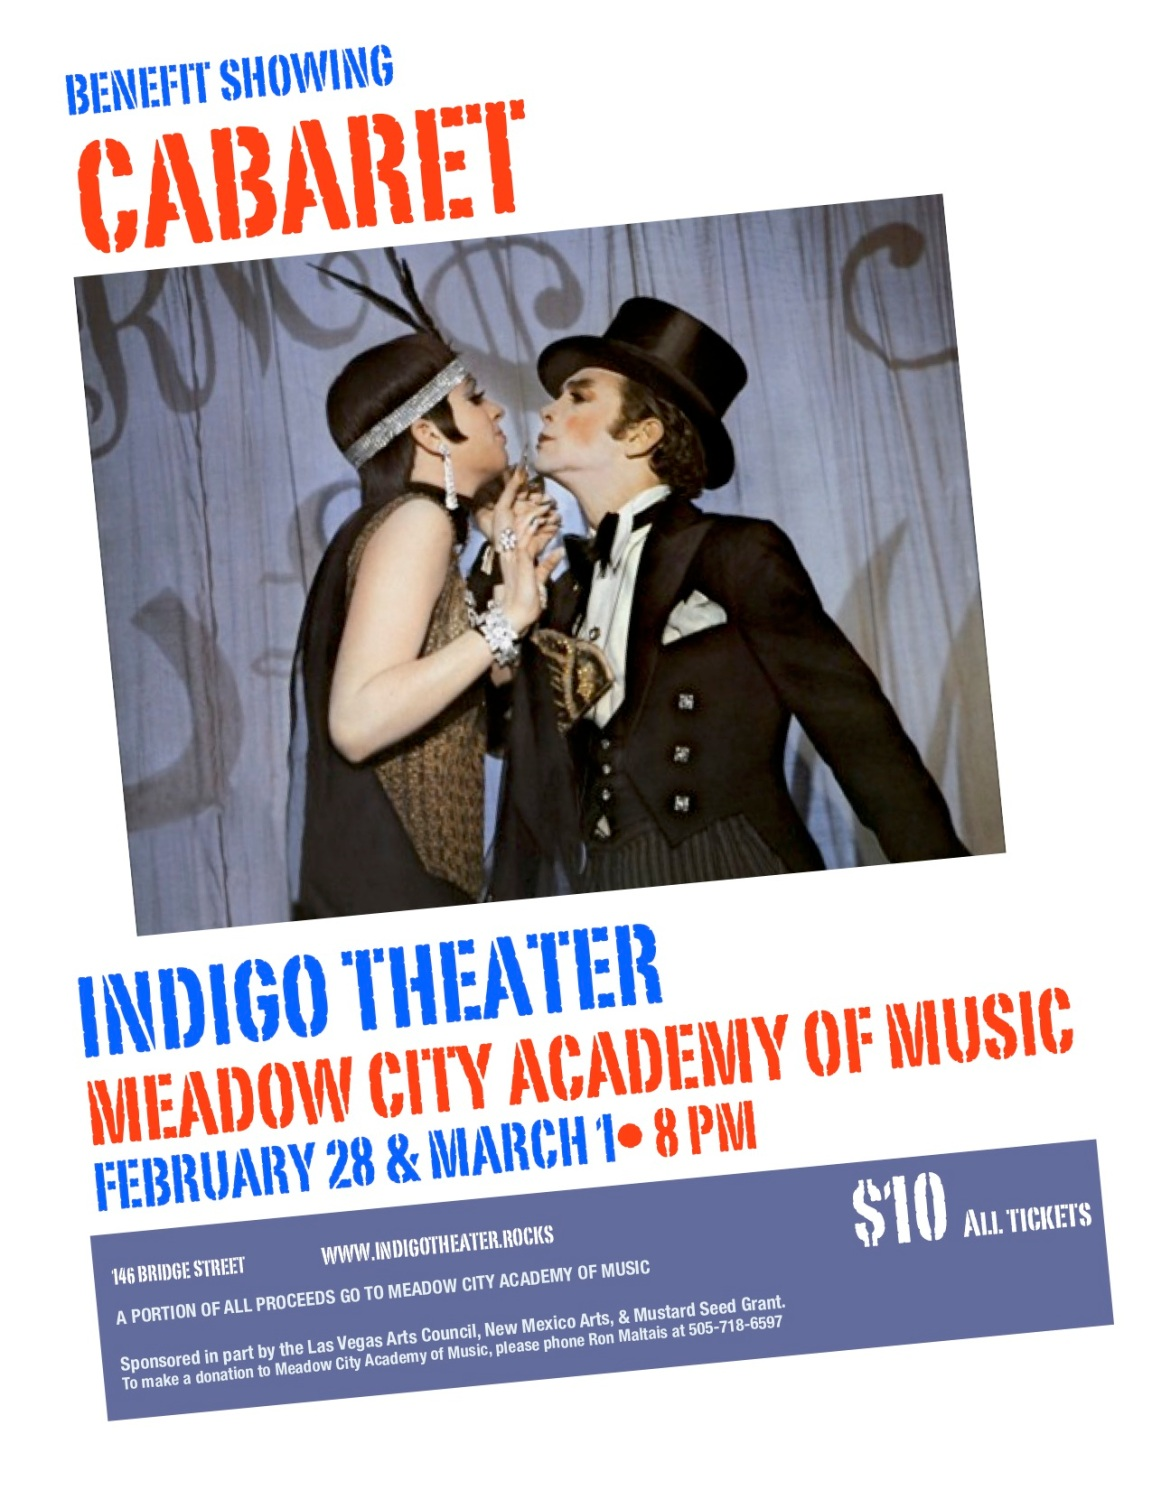 Meadow City Academy of Music Benefit Cabaret